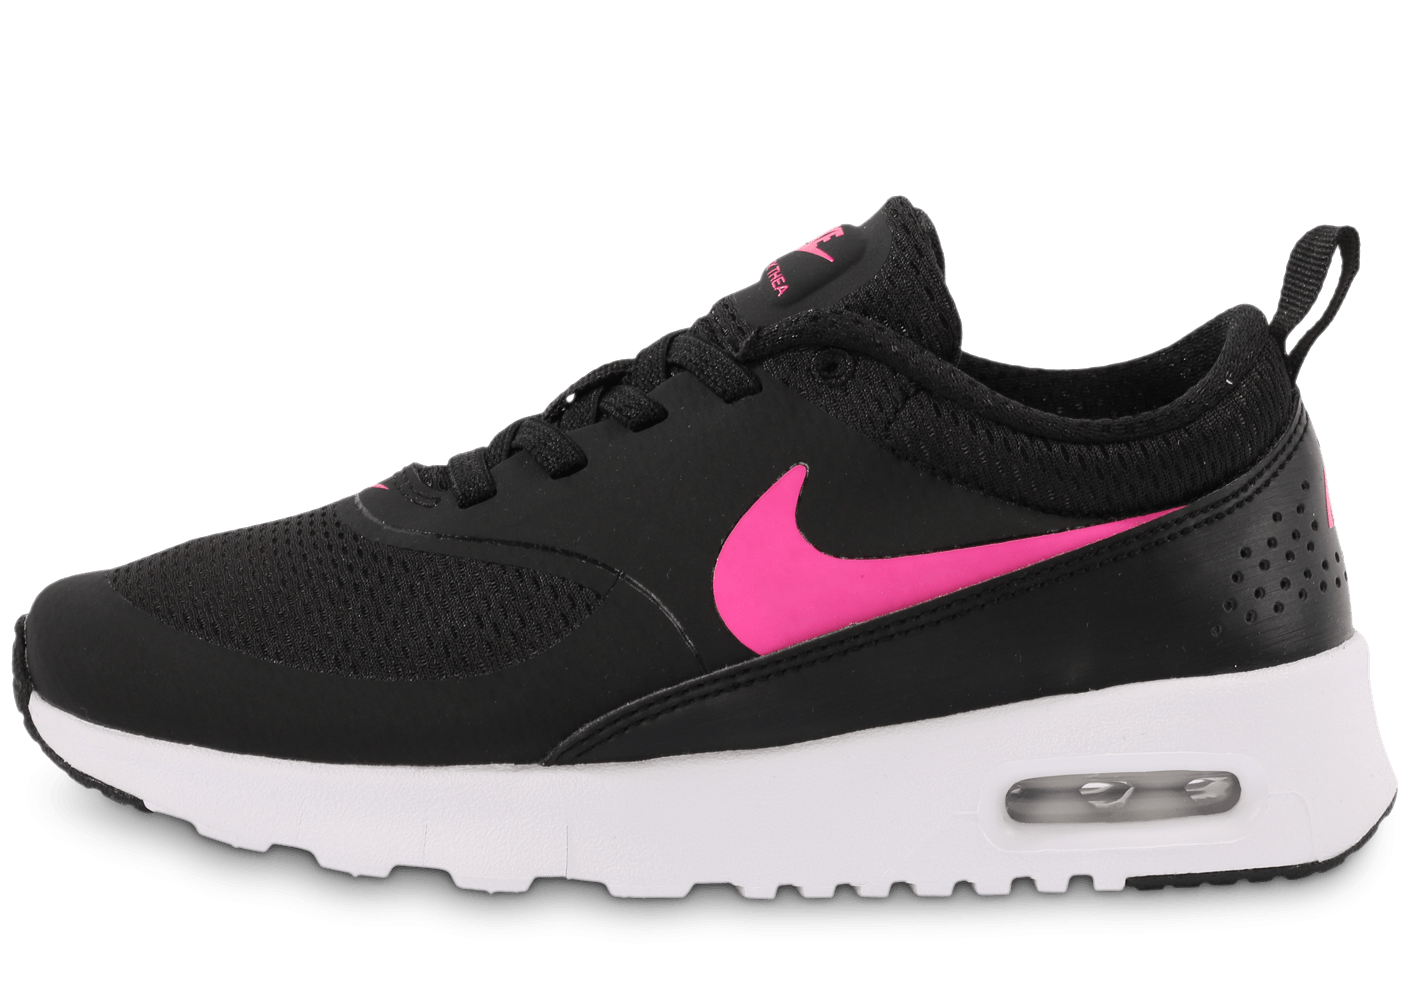 nike air max thea noir et rose enfant chaussures chaussures chausport. Black Bedroom Furniture Sets. Home Design Ideas